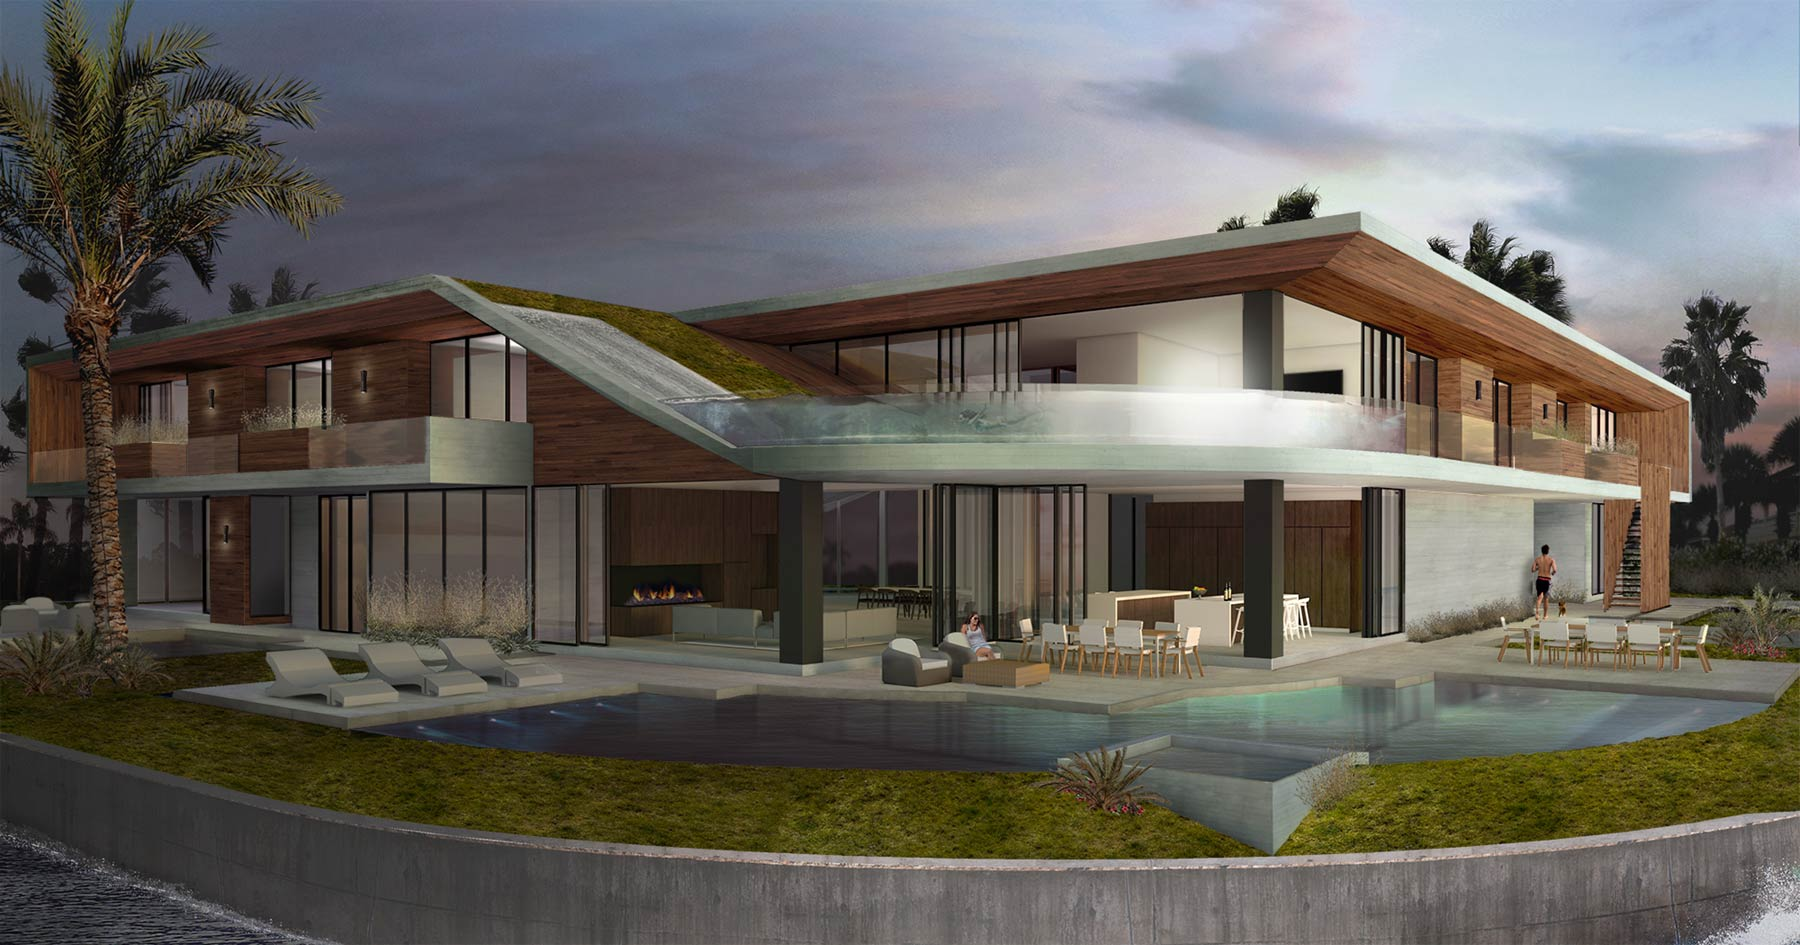 Florida Modern Architecture Rendering of Custom Concrete Home and Floating Pool